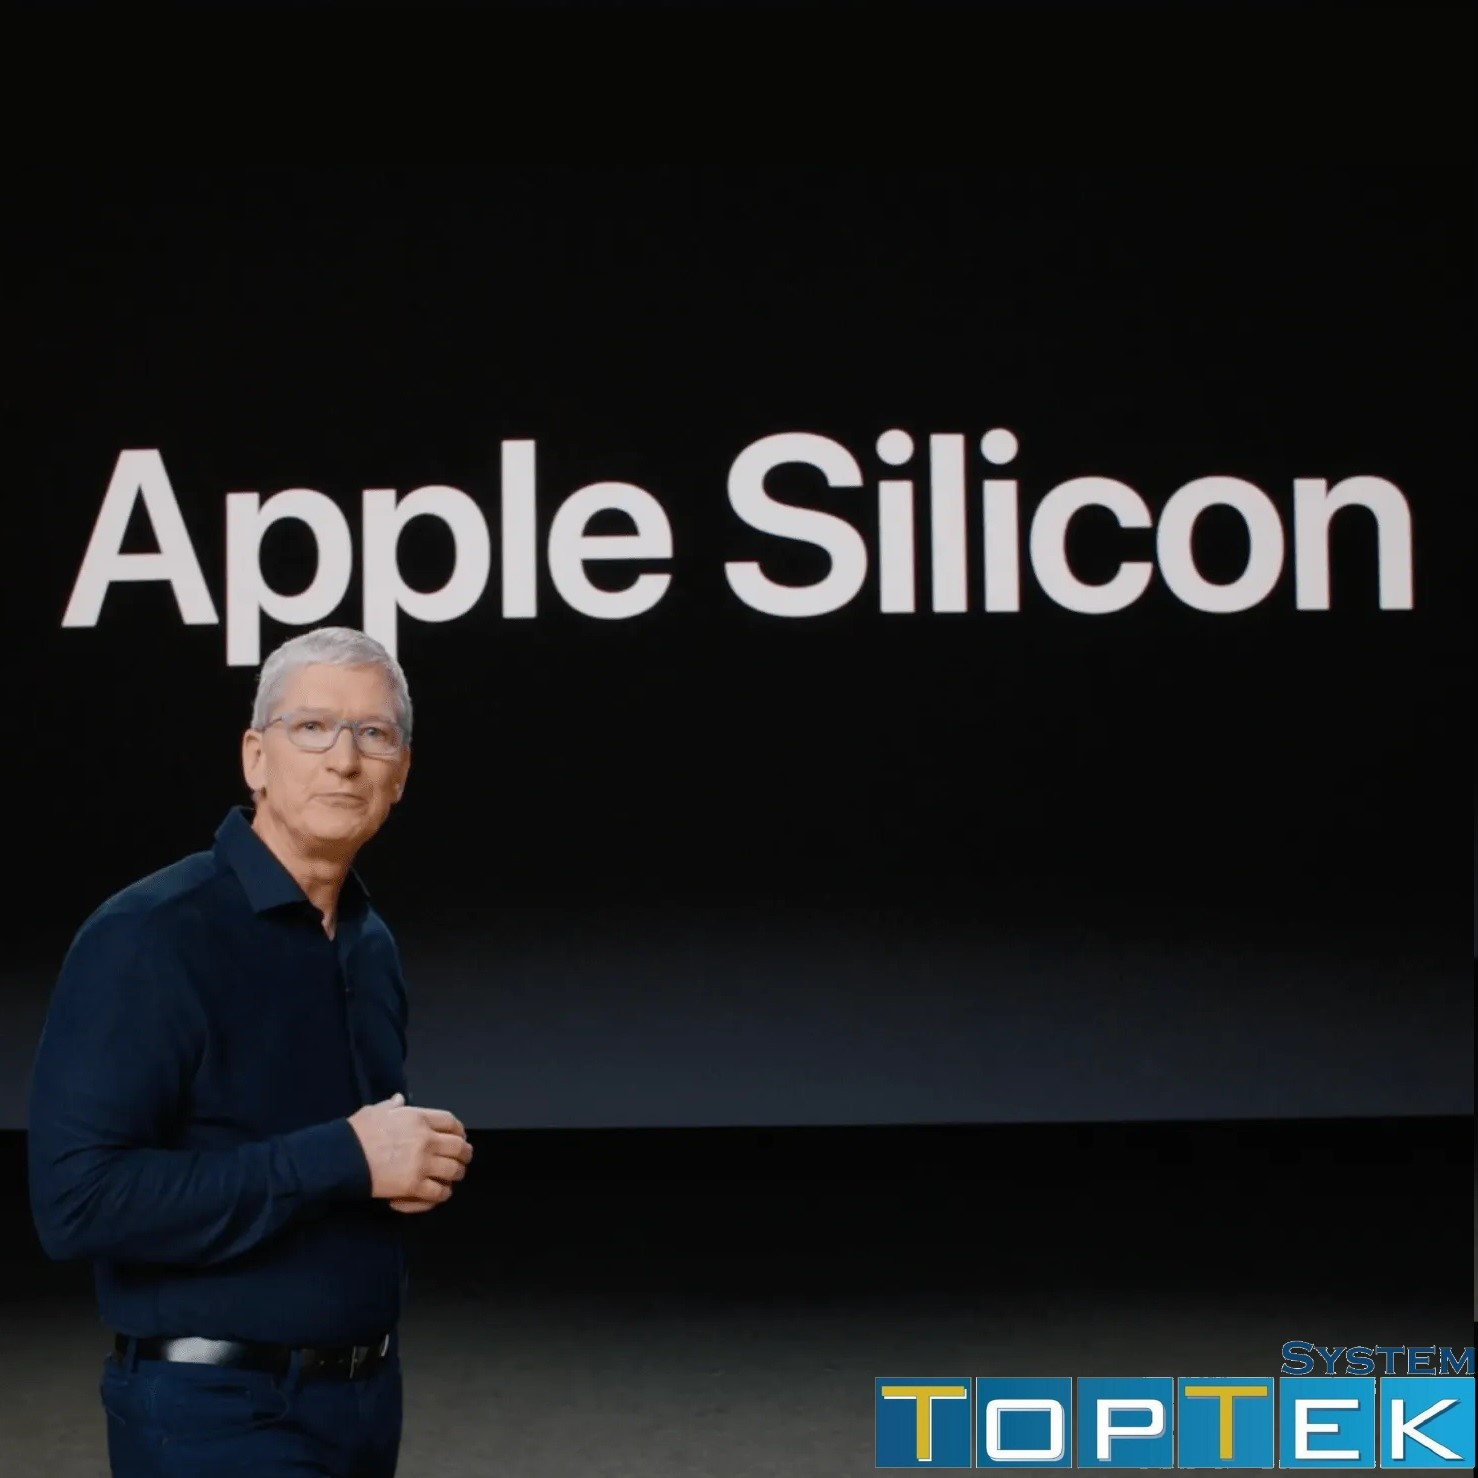 Toptek Applesilicon